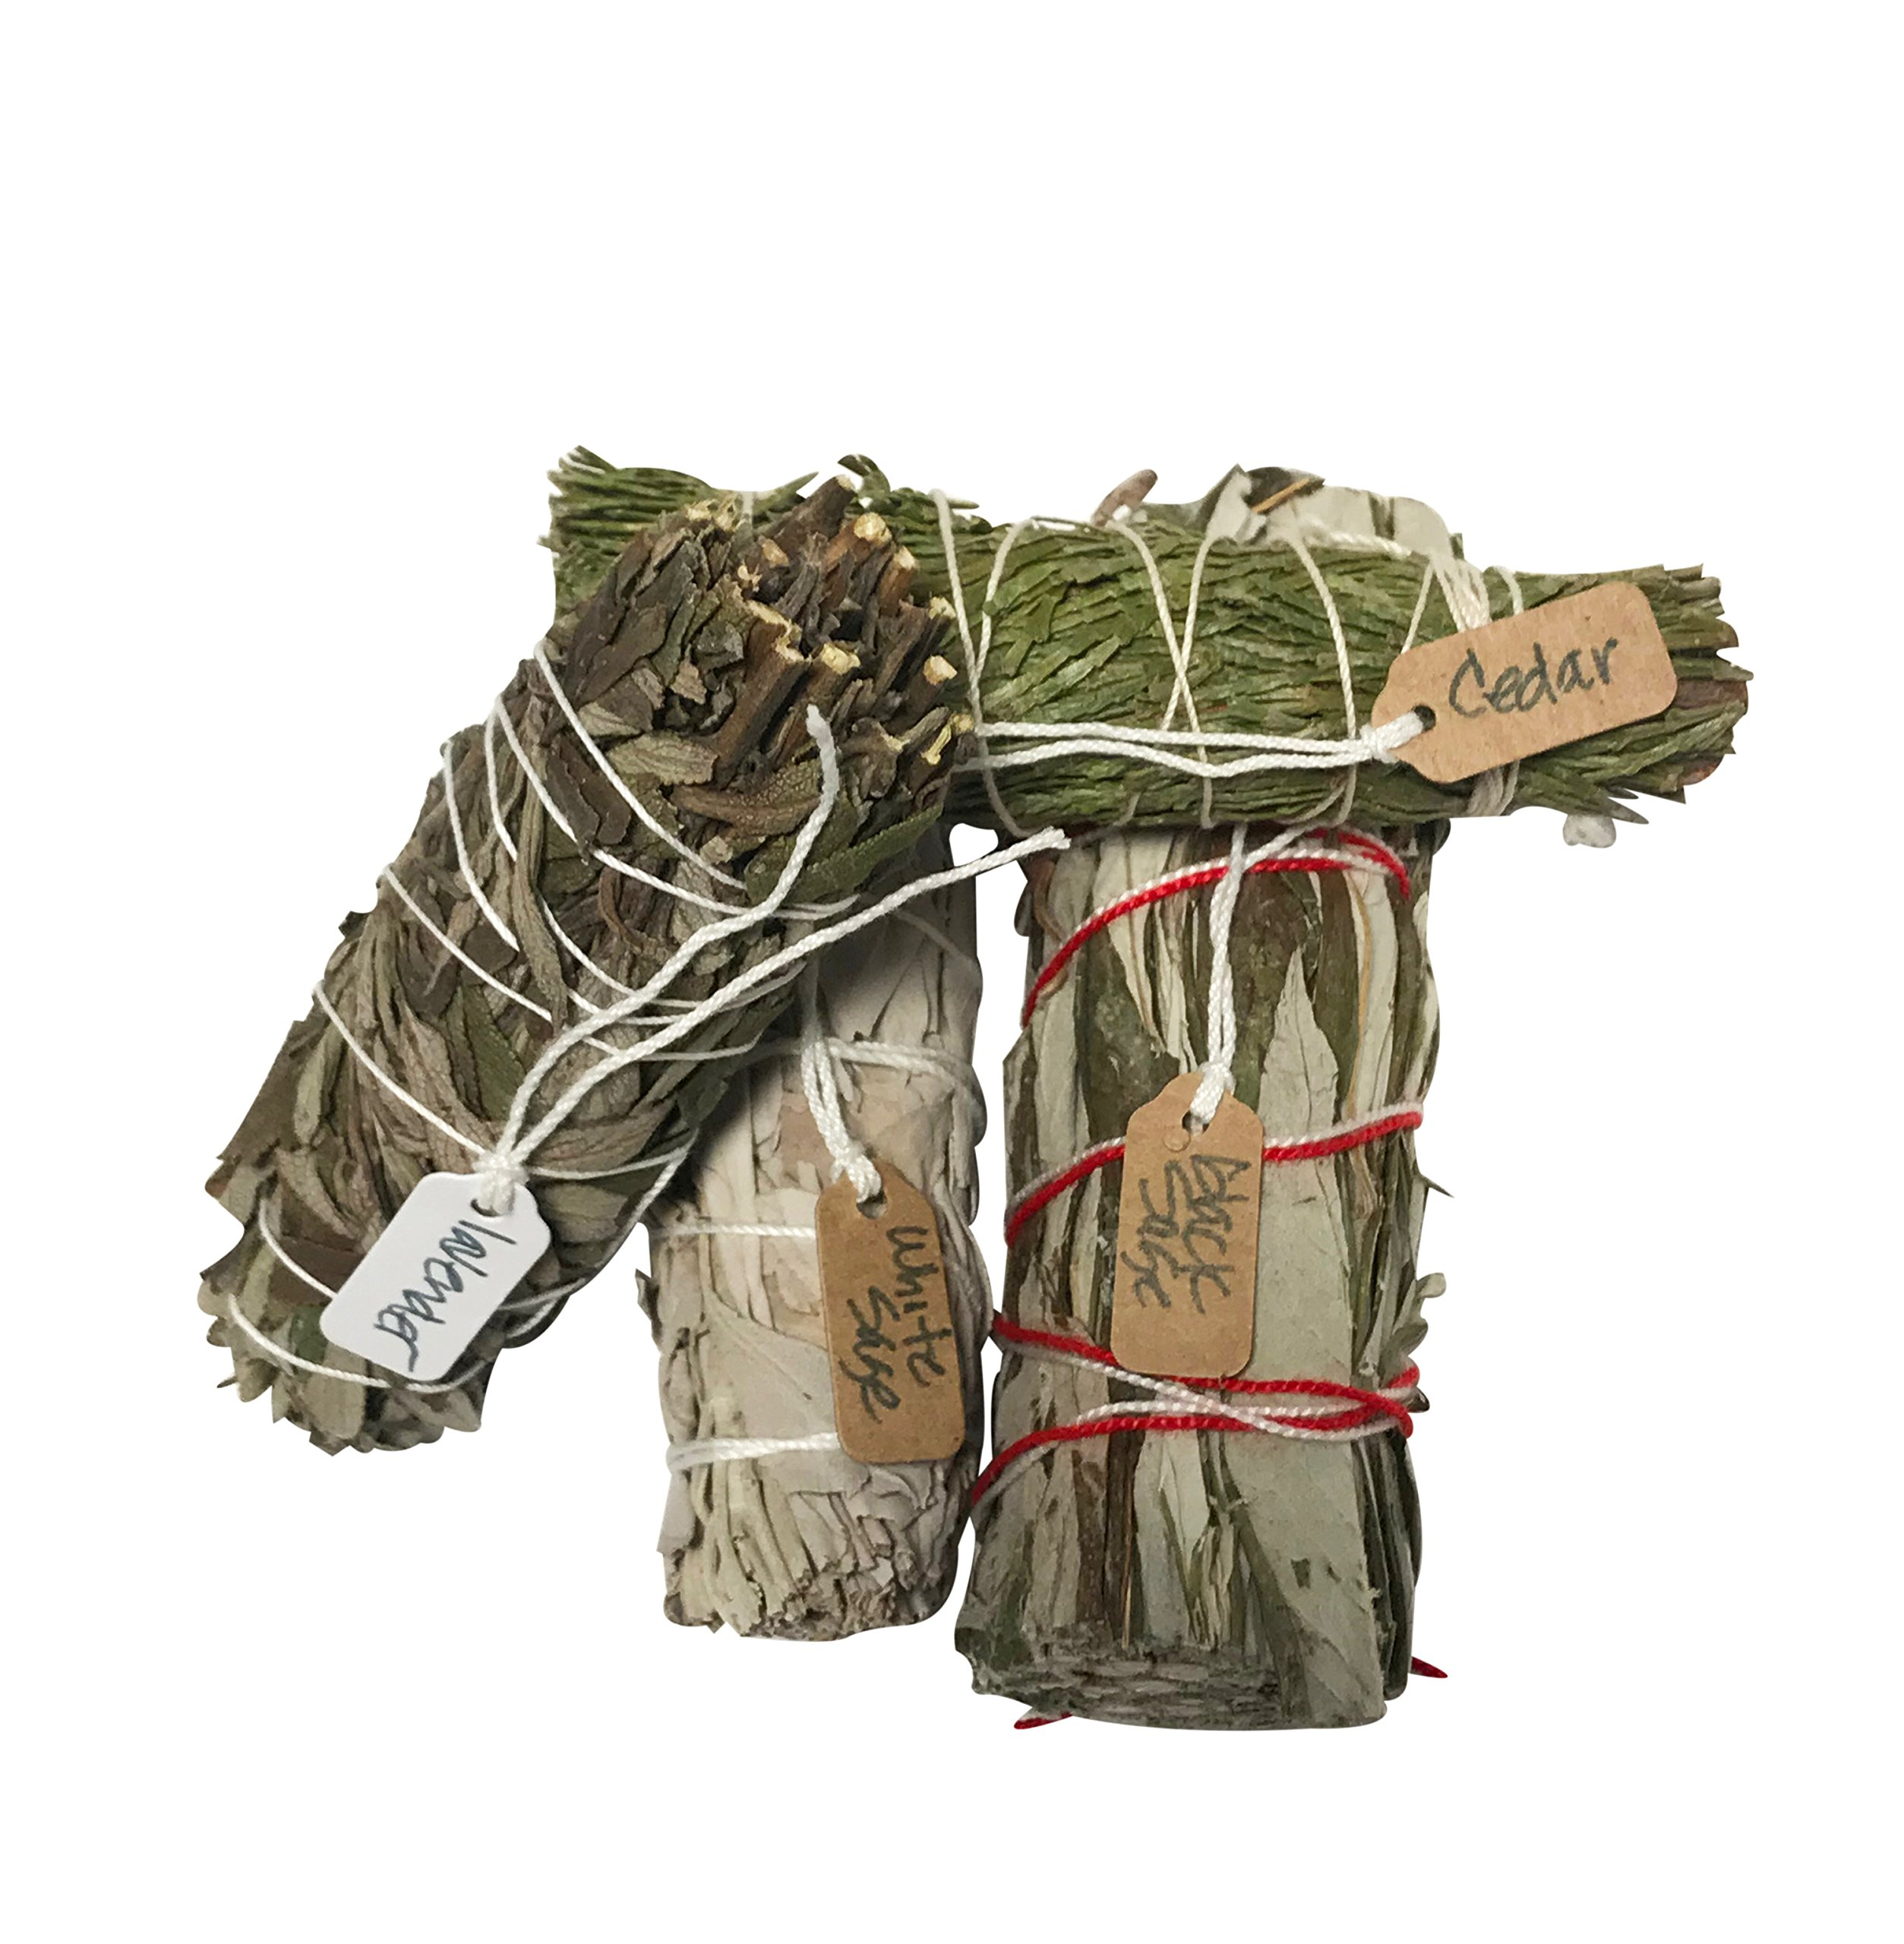 Arianna Willow Variety Smudge Sticks an Opportunity to Sample the Finest White Sage, Lavender, Cedar, and Black Sage one of each 4 inches long. by Arianna Willow